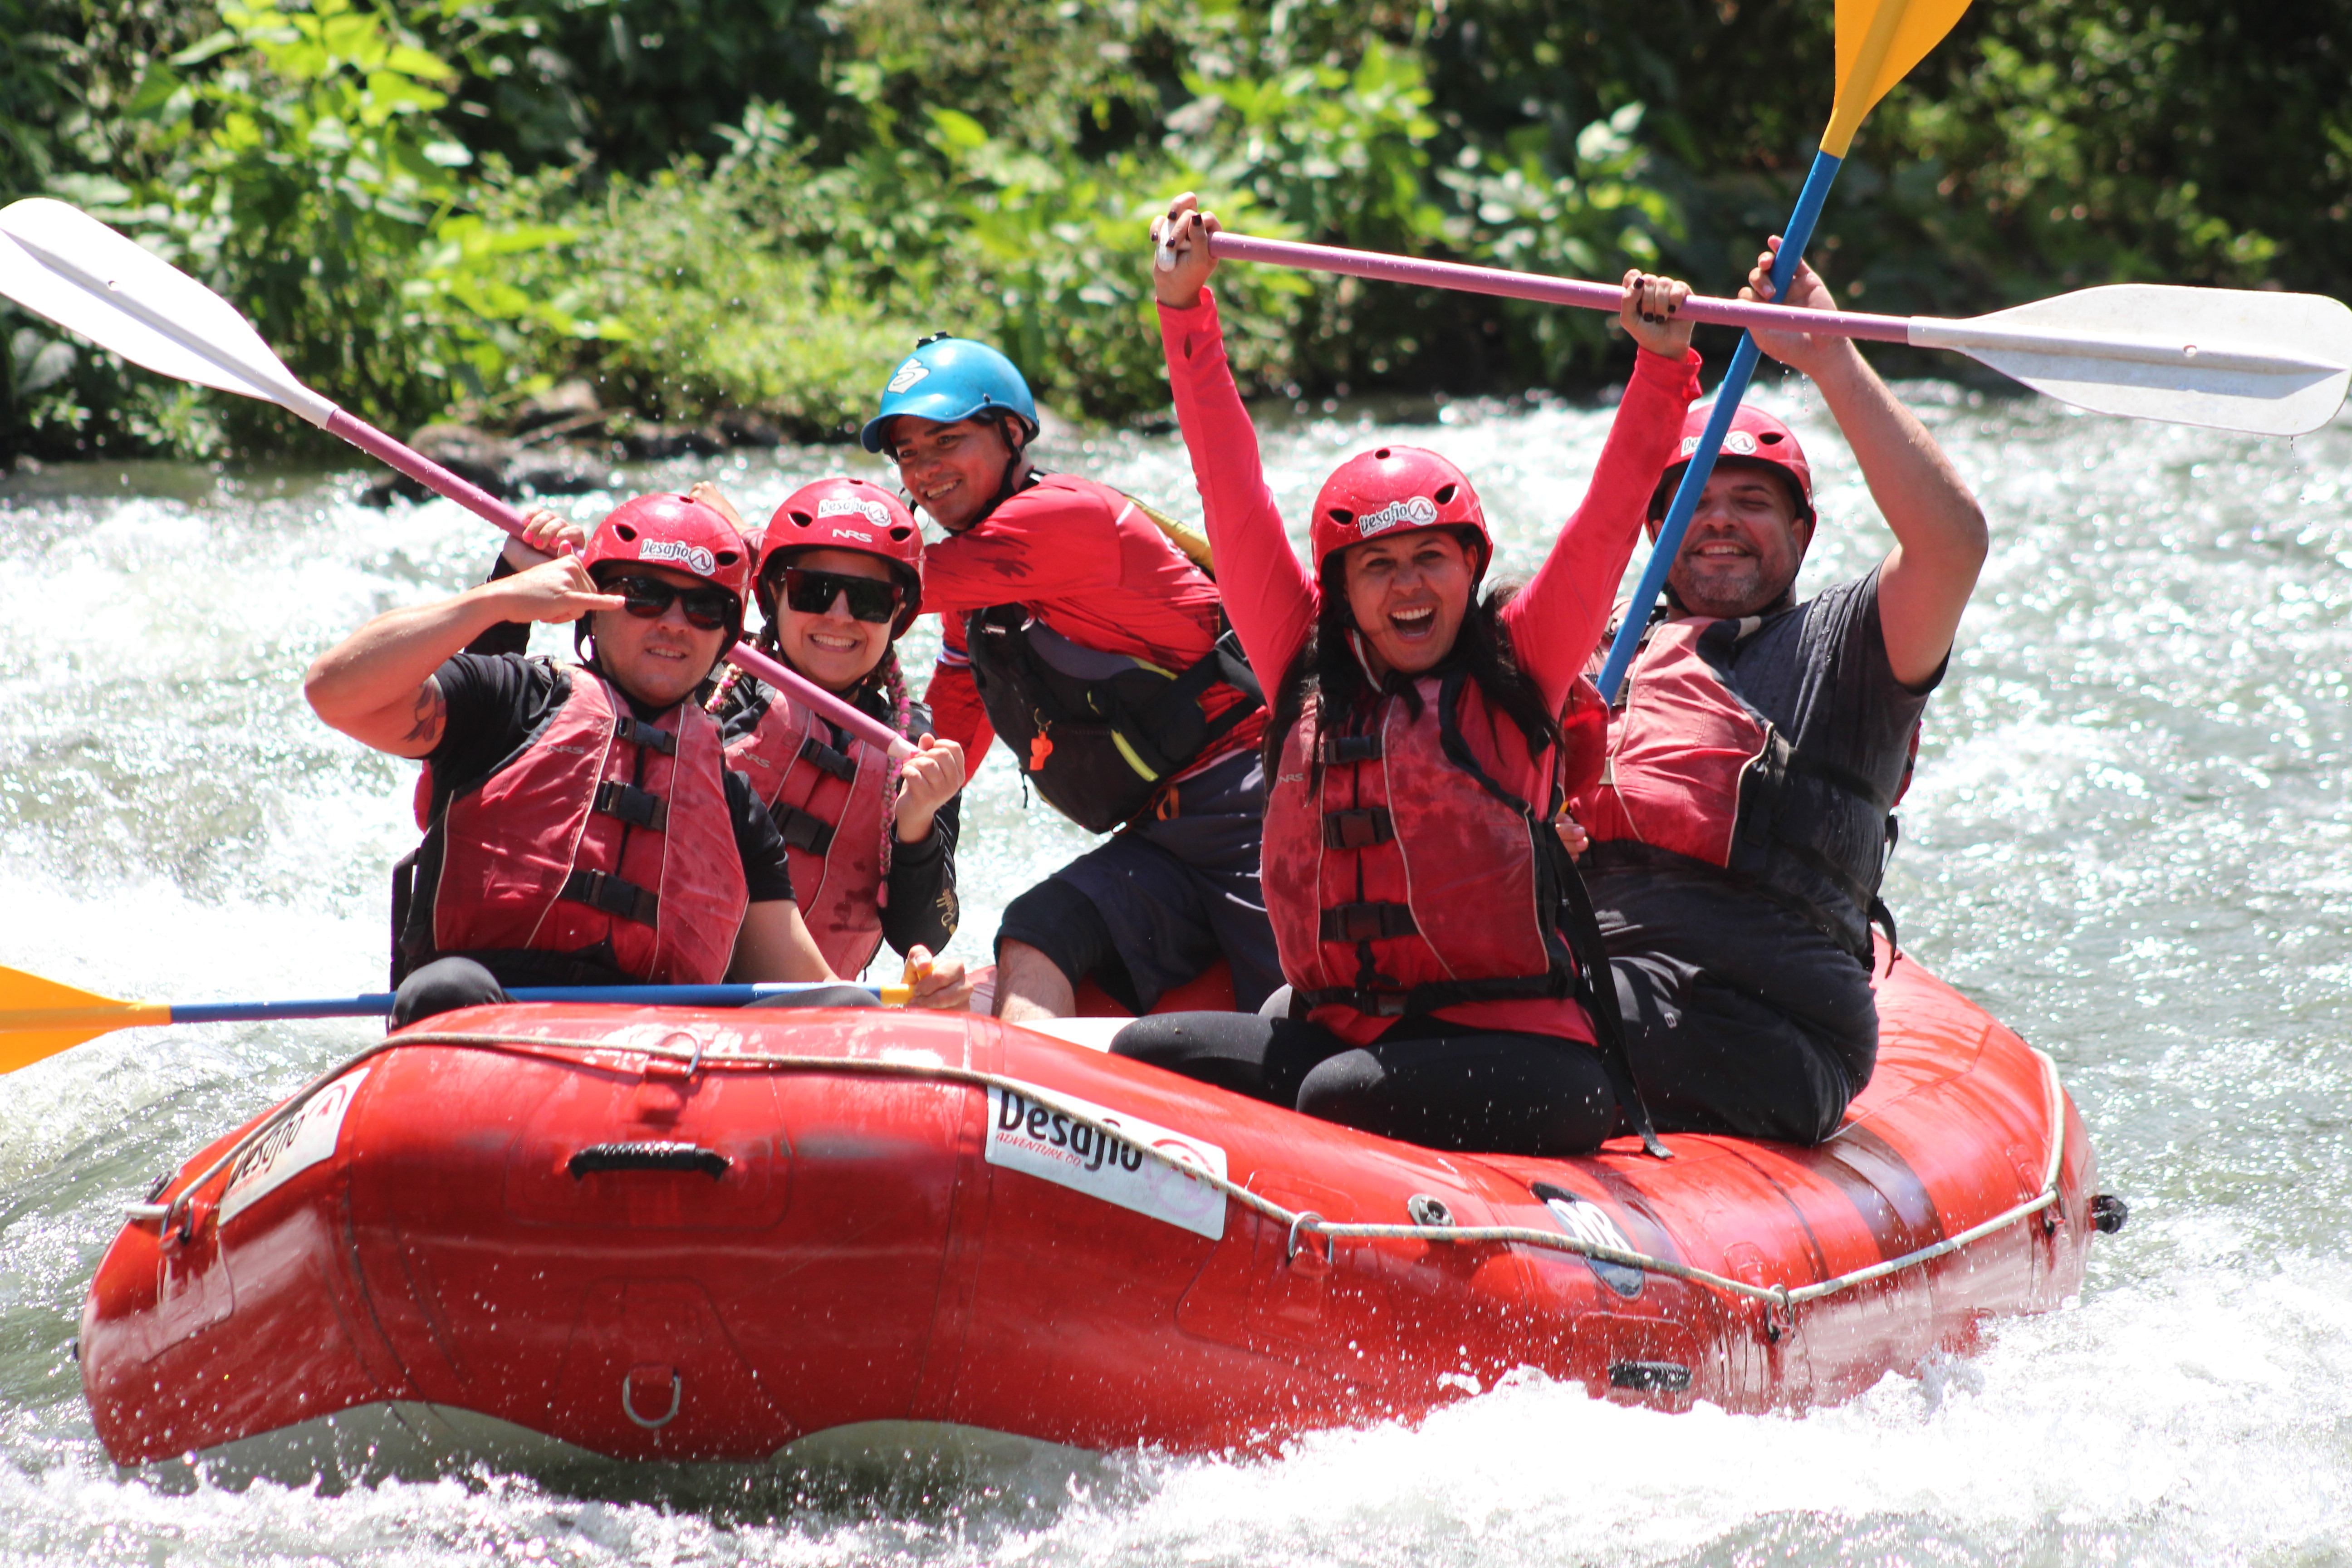 San Jose toLa Fortuna Arenal FULL White Water Rafting Class 3 and 4-Go extreme on your Costa Rica vacation!